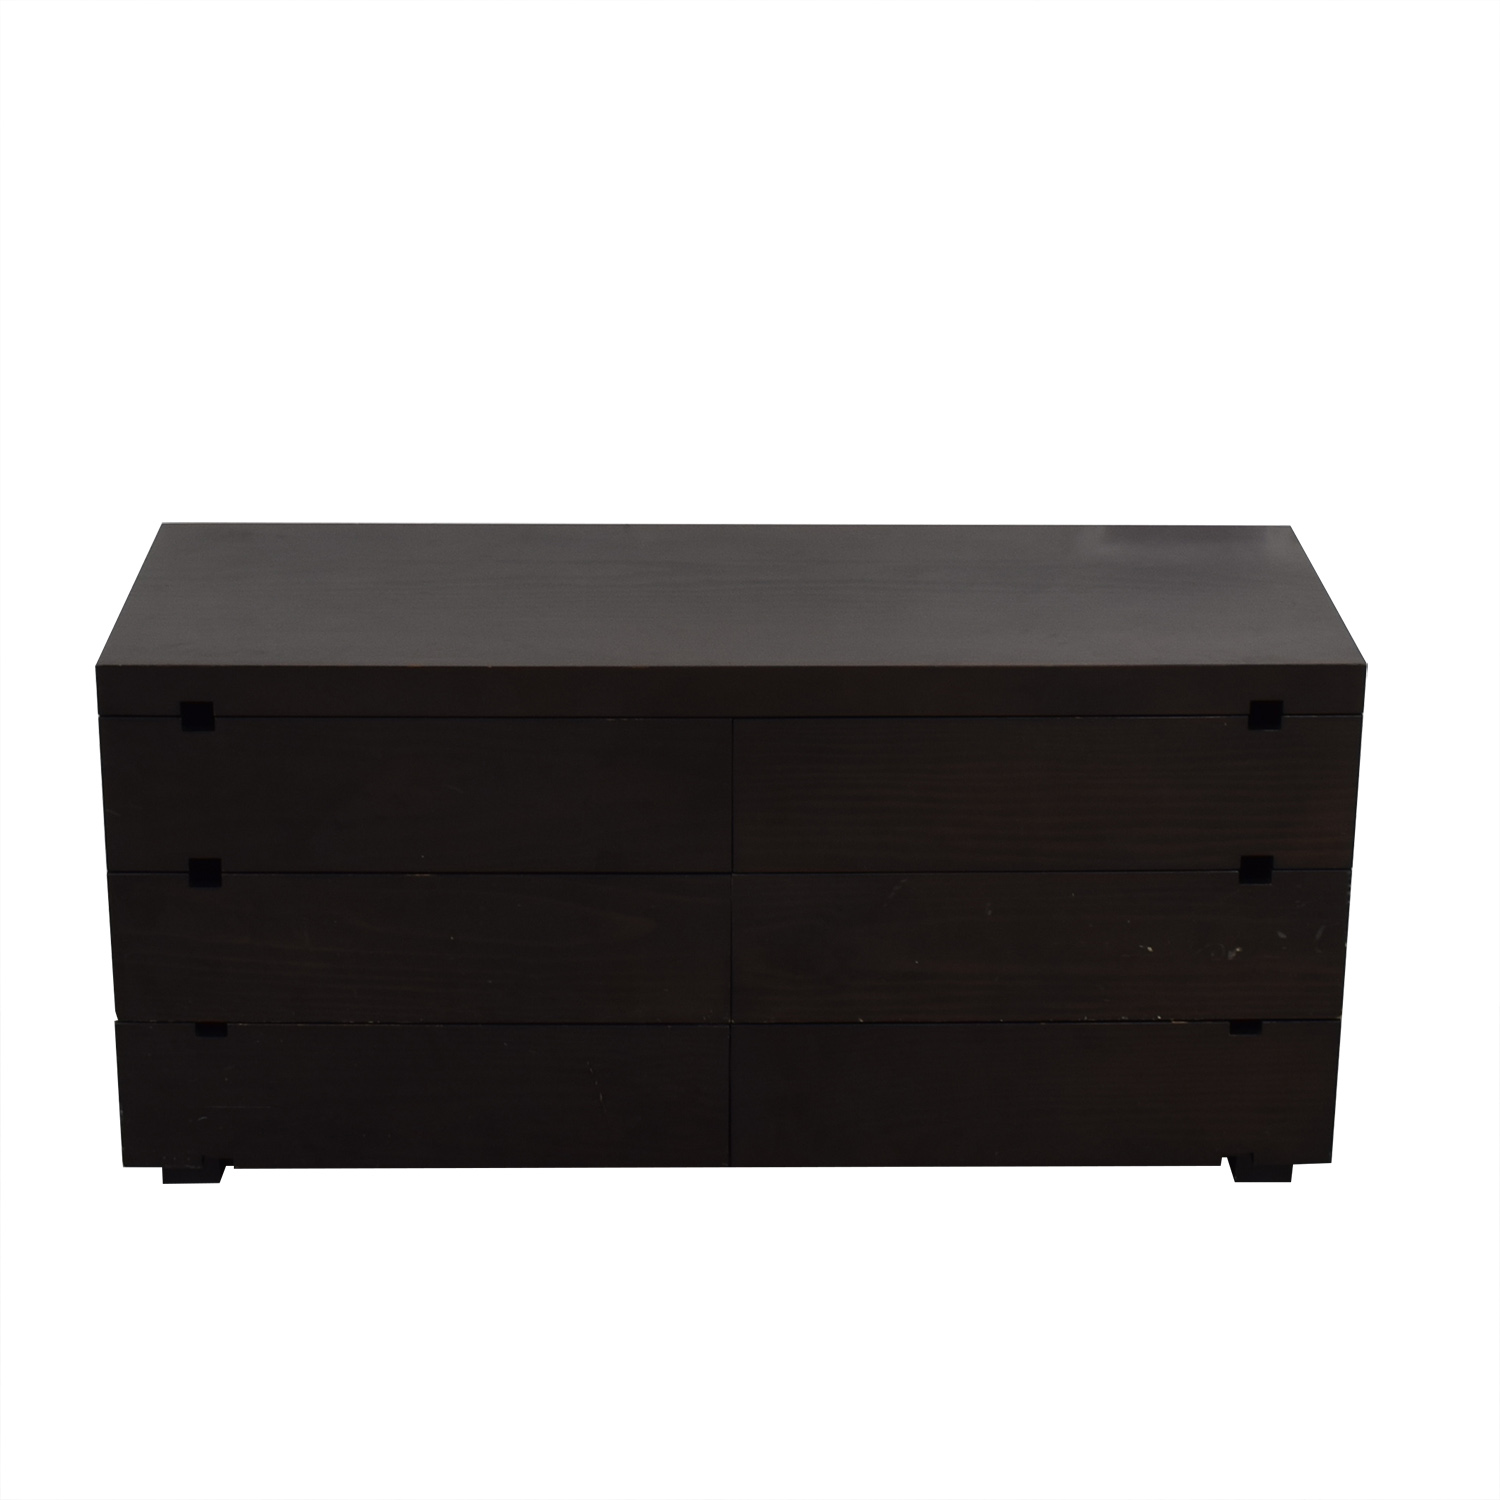 West Elm West Elm Six Drawer Dresser nj